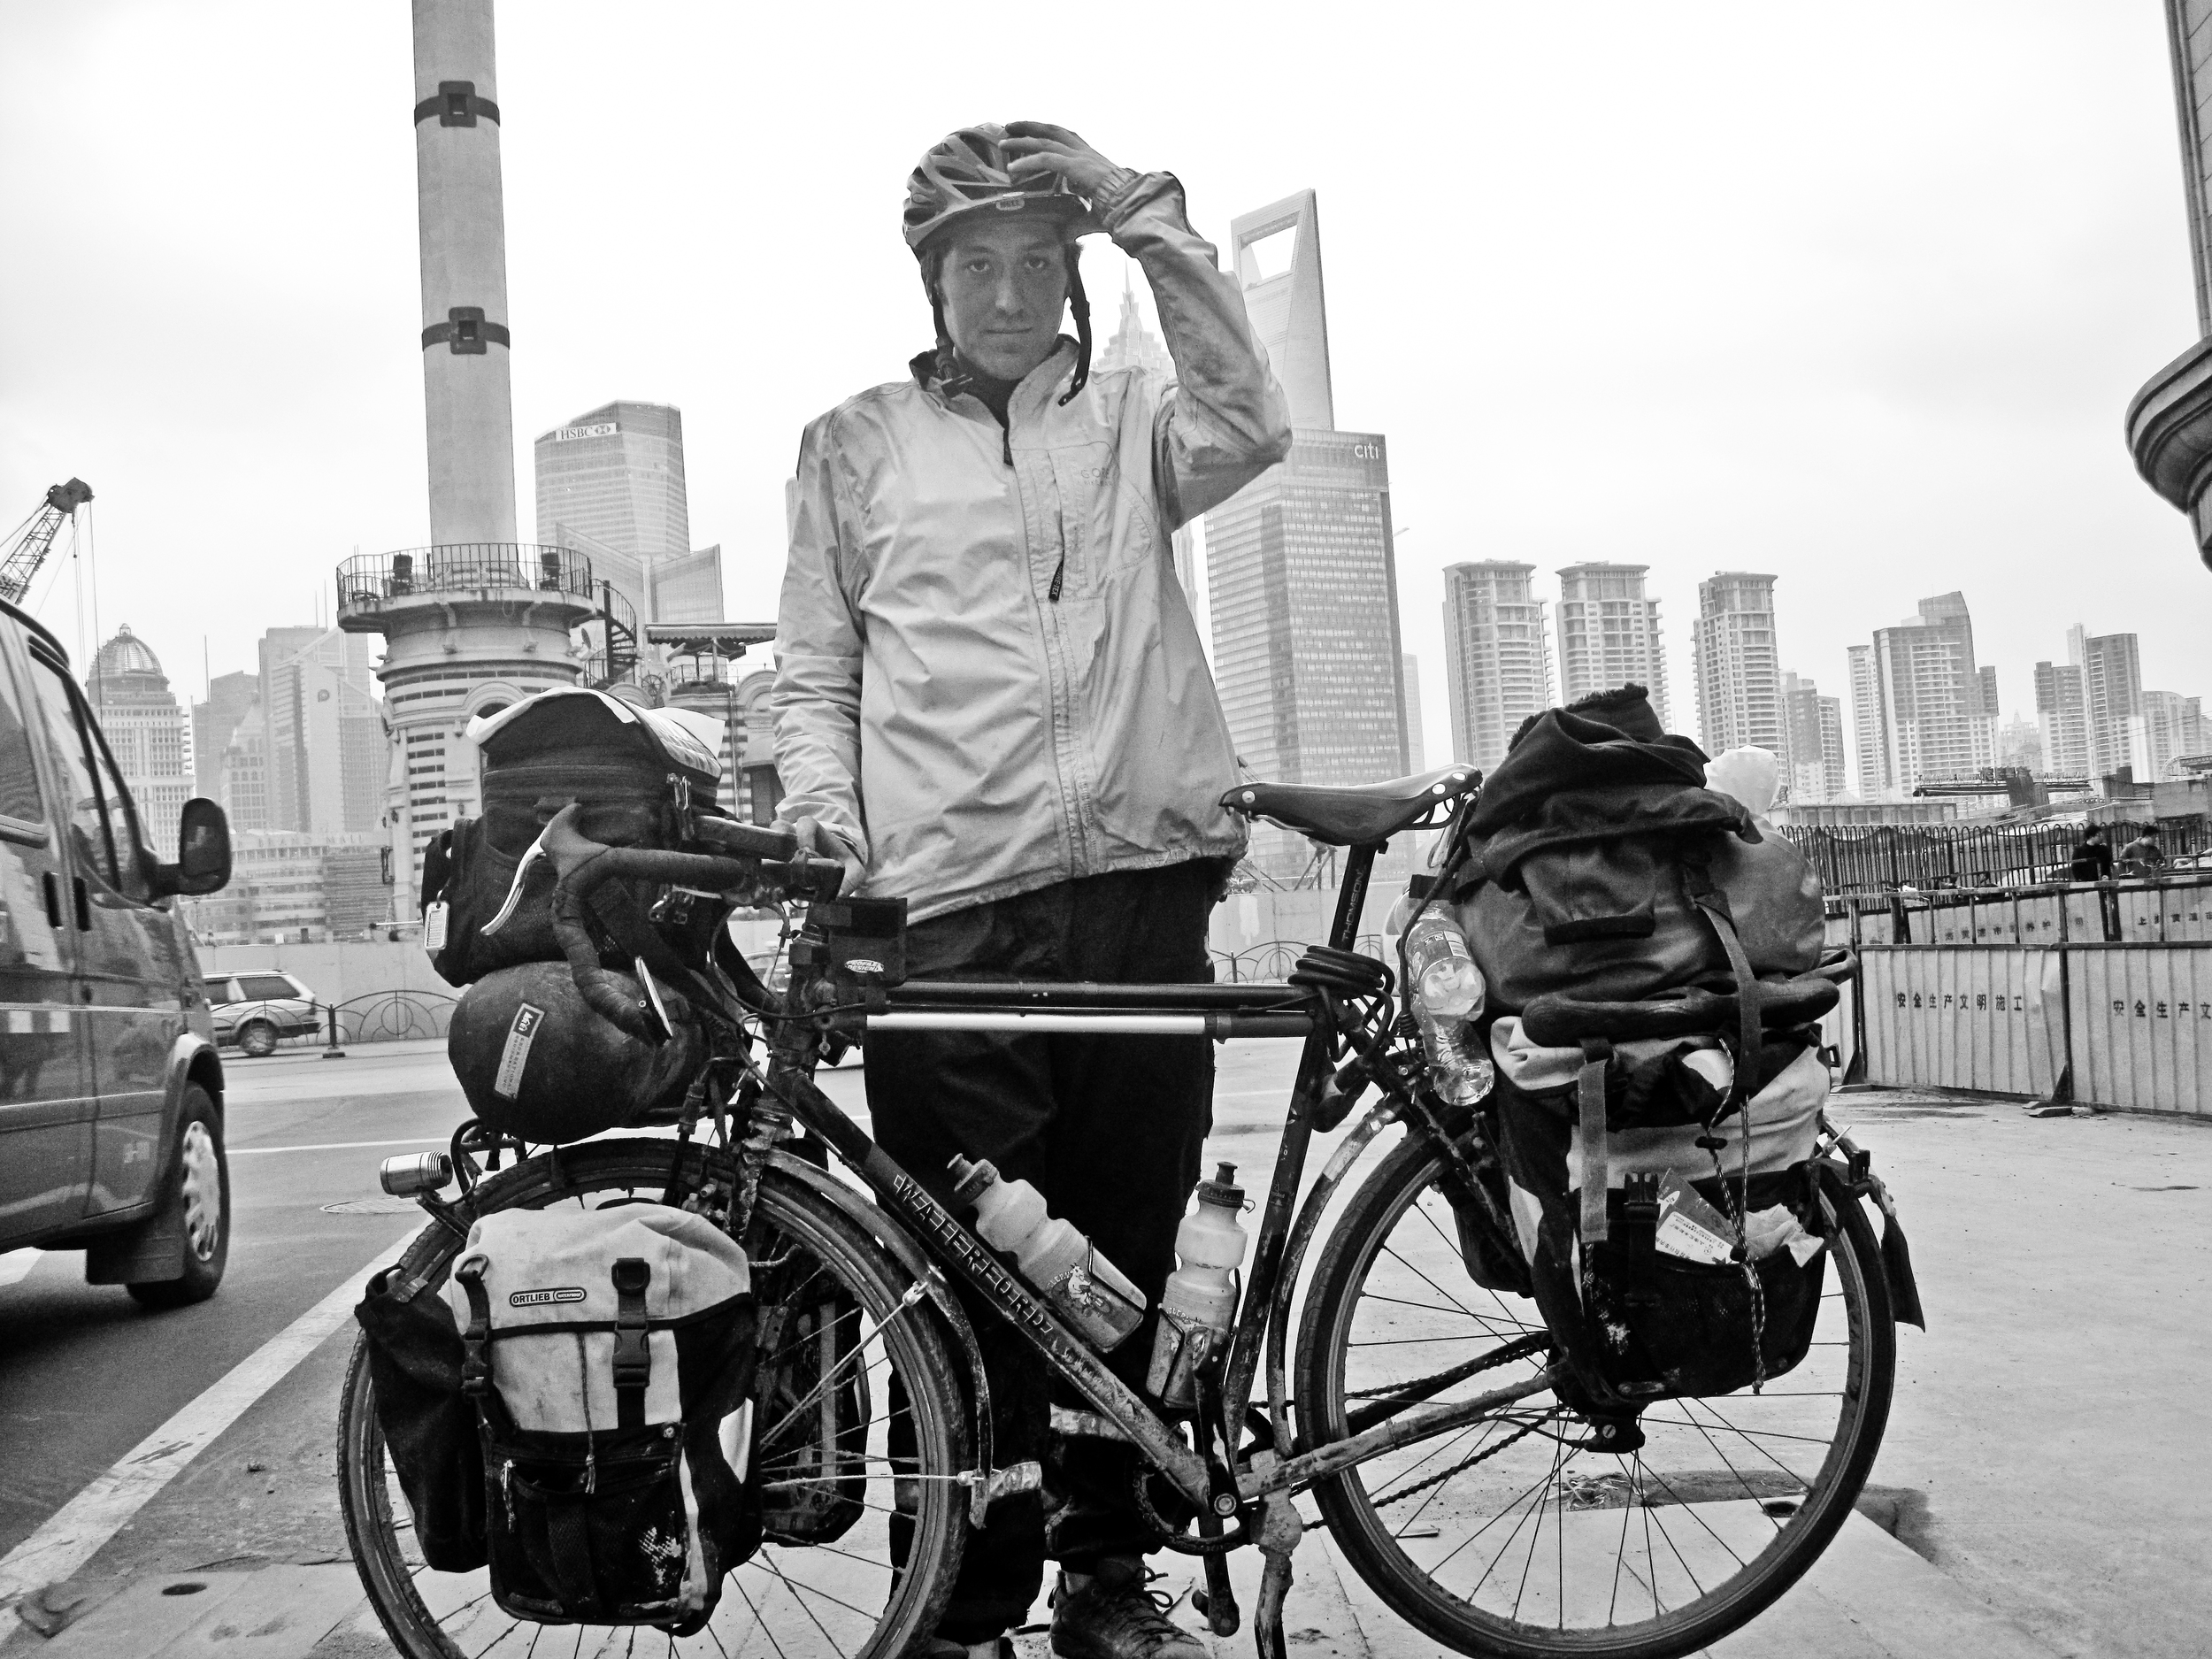 Shanghai: 11,000 miles from the Atlantic